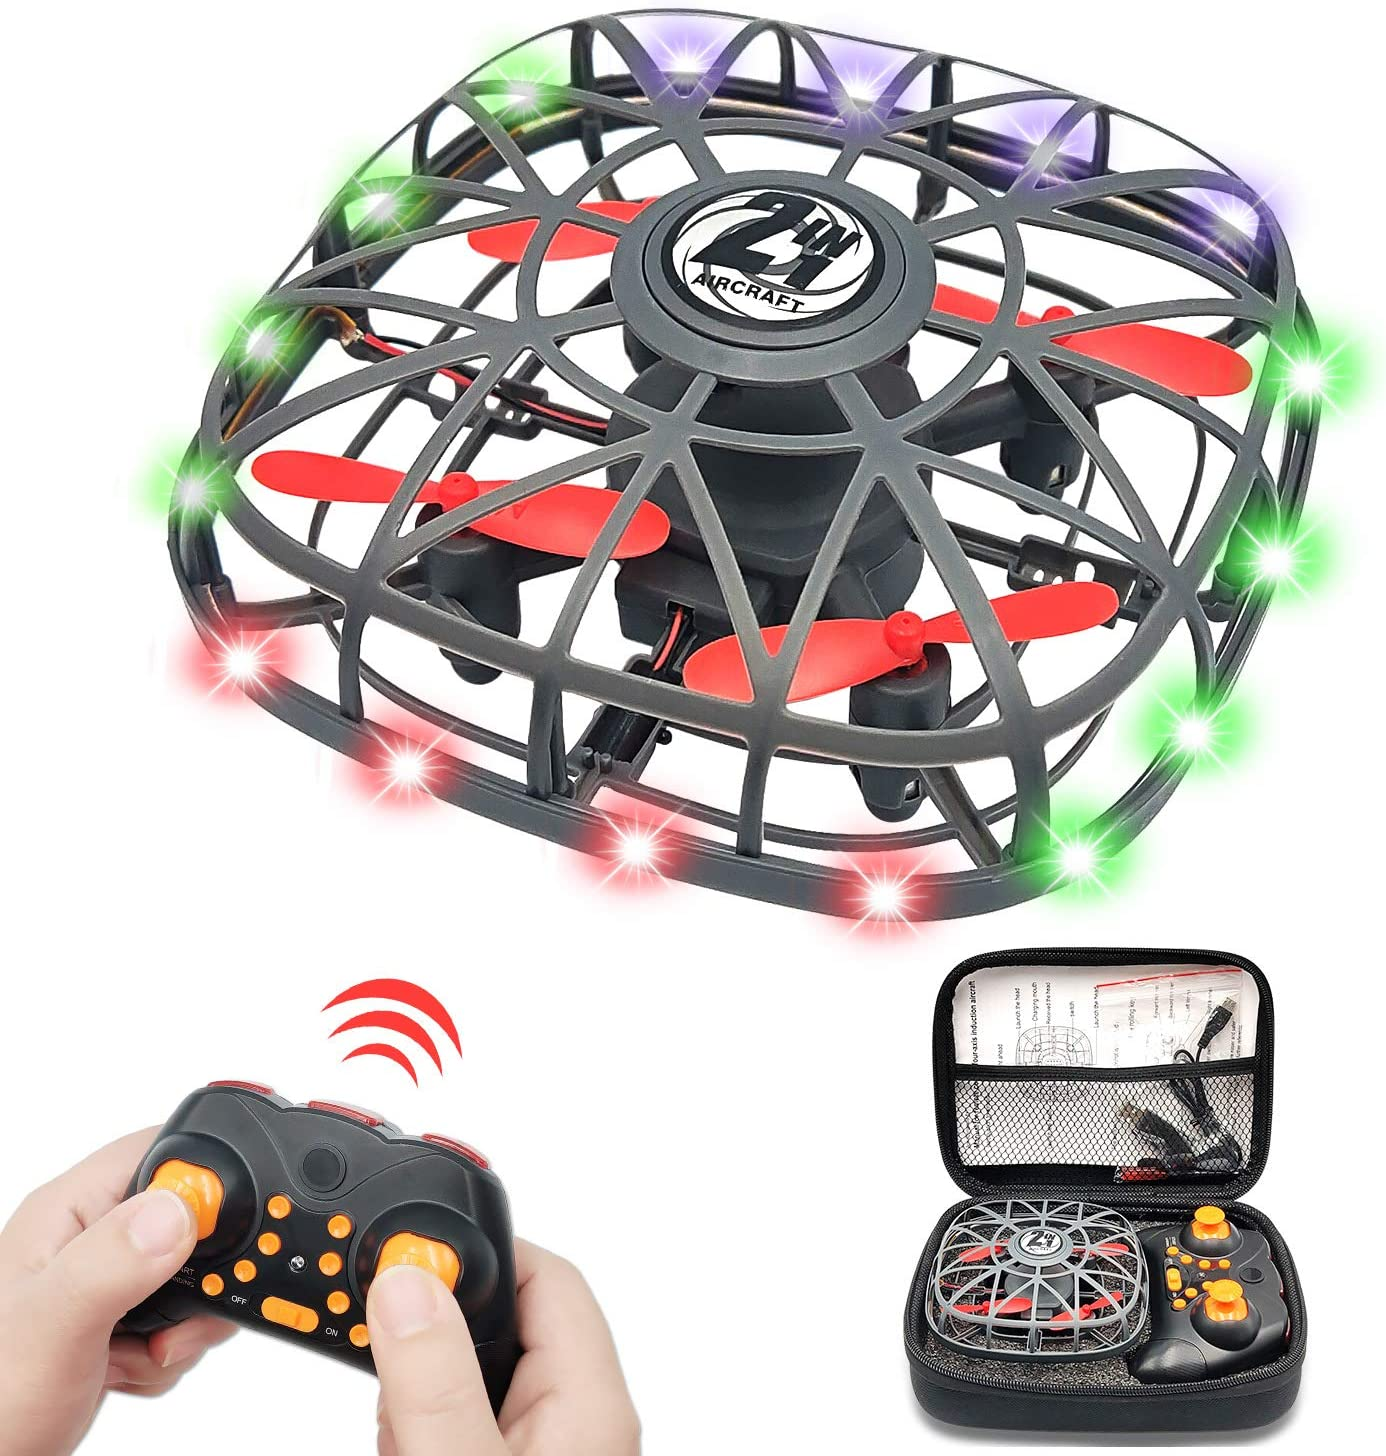 FLORLD UFO Drone Kids Flying Toys, LED Hand Opeared & RC Drone 2 Operating Modes Motion Sensor Flying Balls Gifts for 6 7 8 9 10+ Years Old Boys Girls Adults, Black